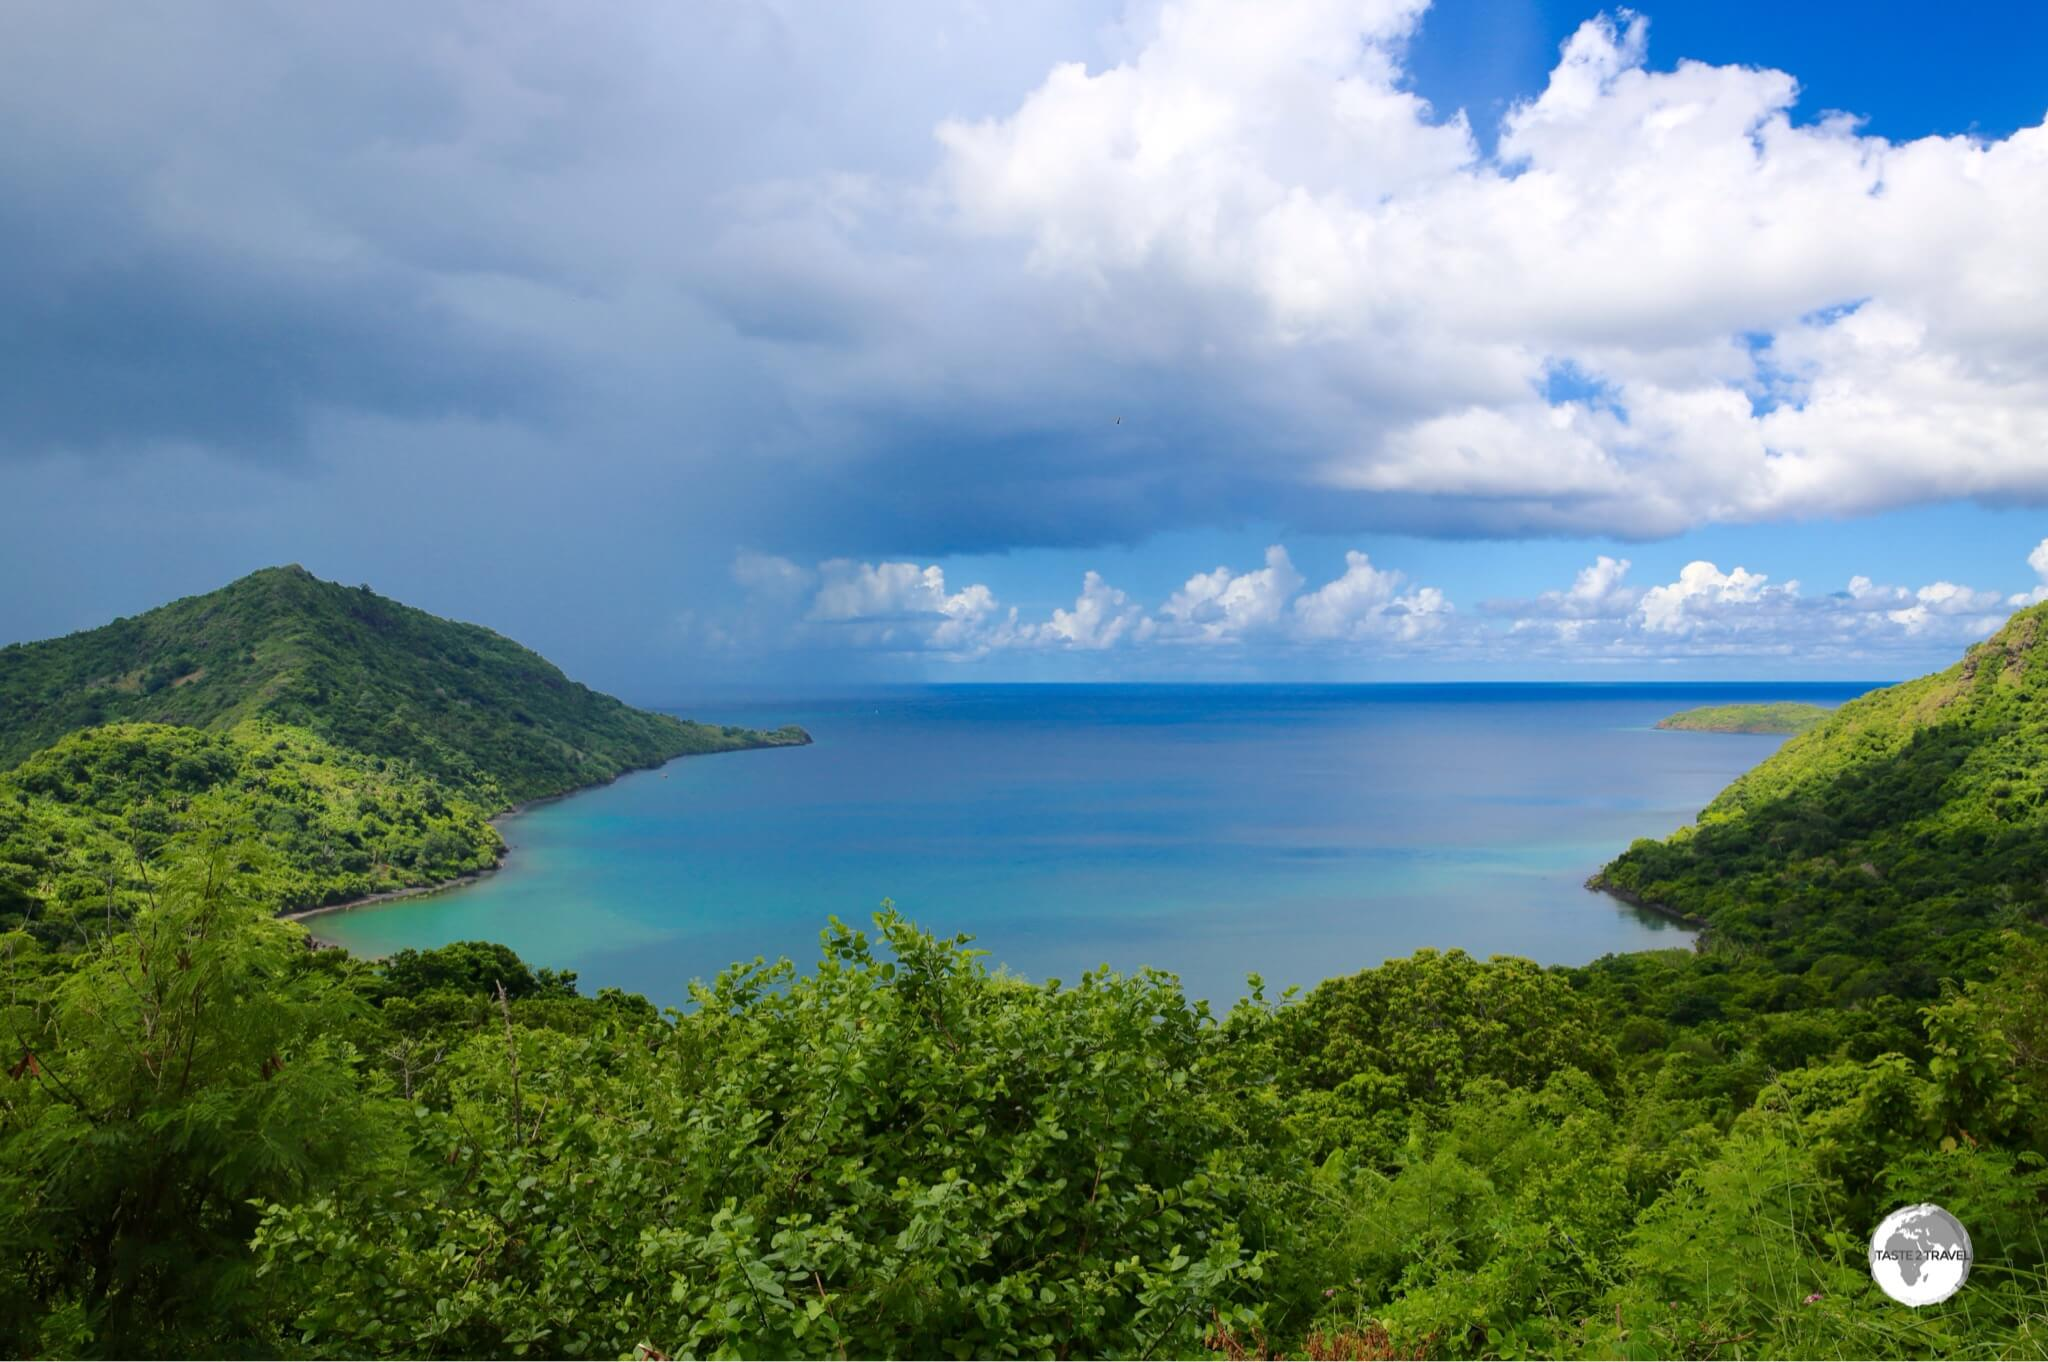 Storm clouds over Baie de Handréma, one of the best views on the north coast.